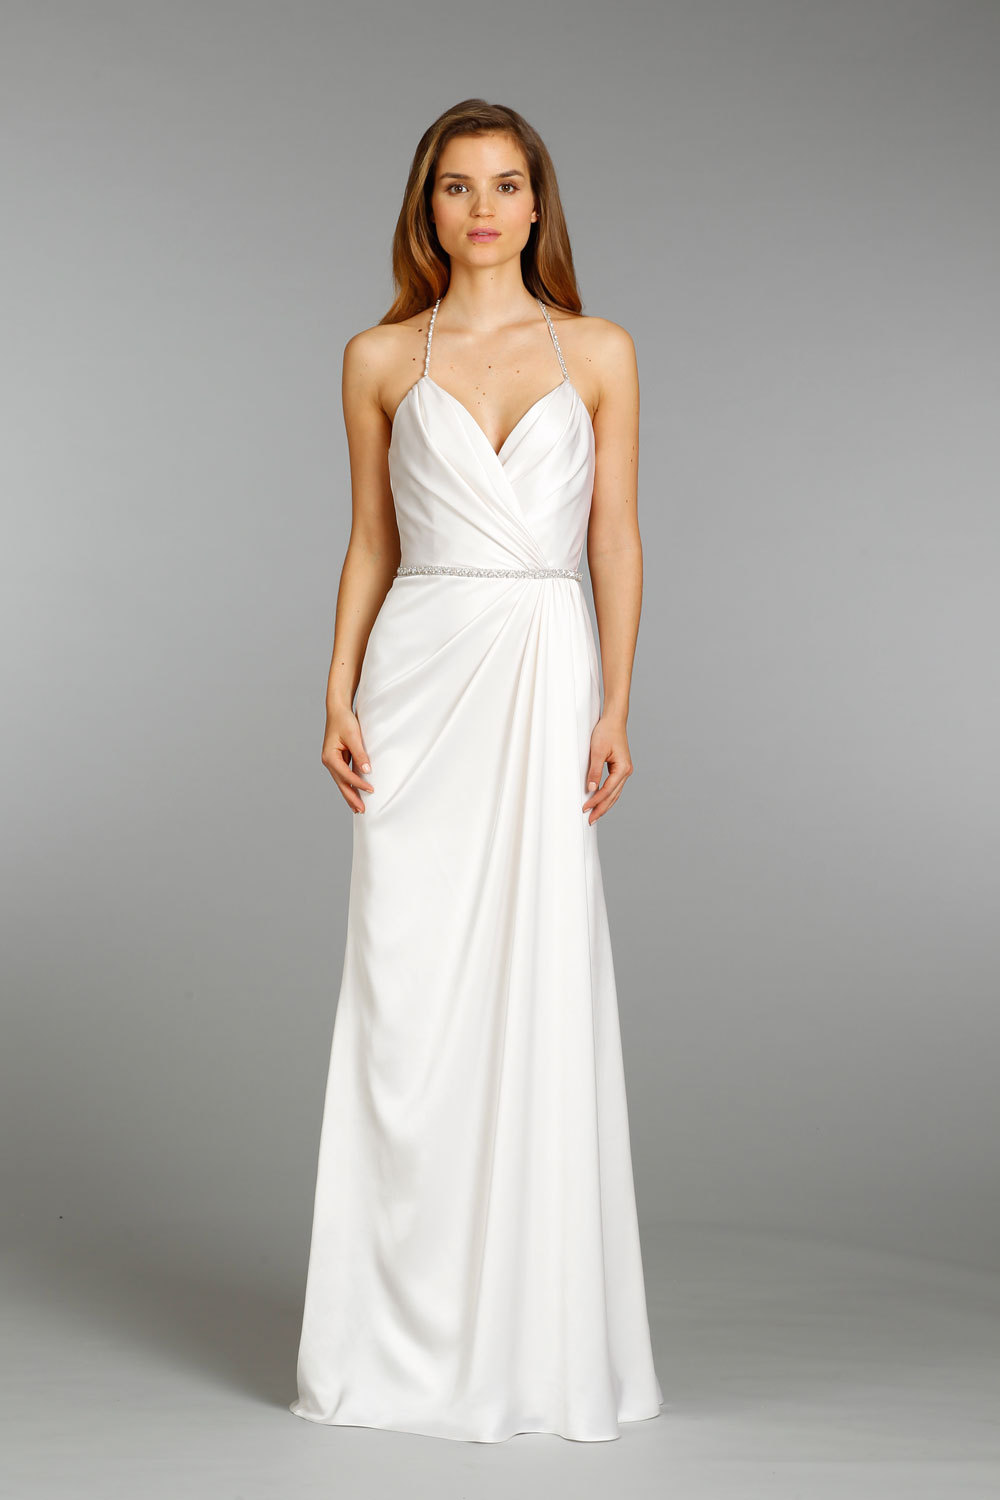 Jim hjelm wedding dress fall 2013 bridal 8362 for Jim hjelm wedding dresses